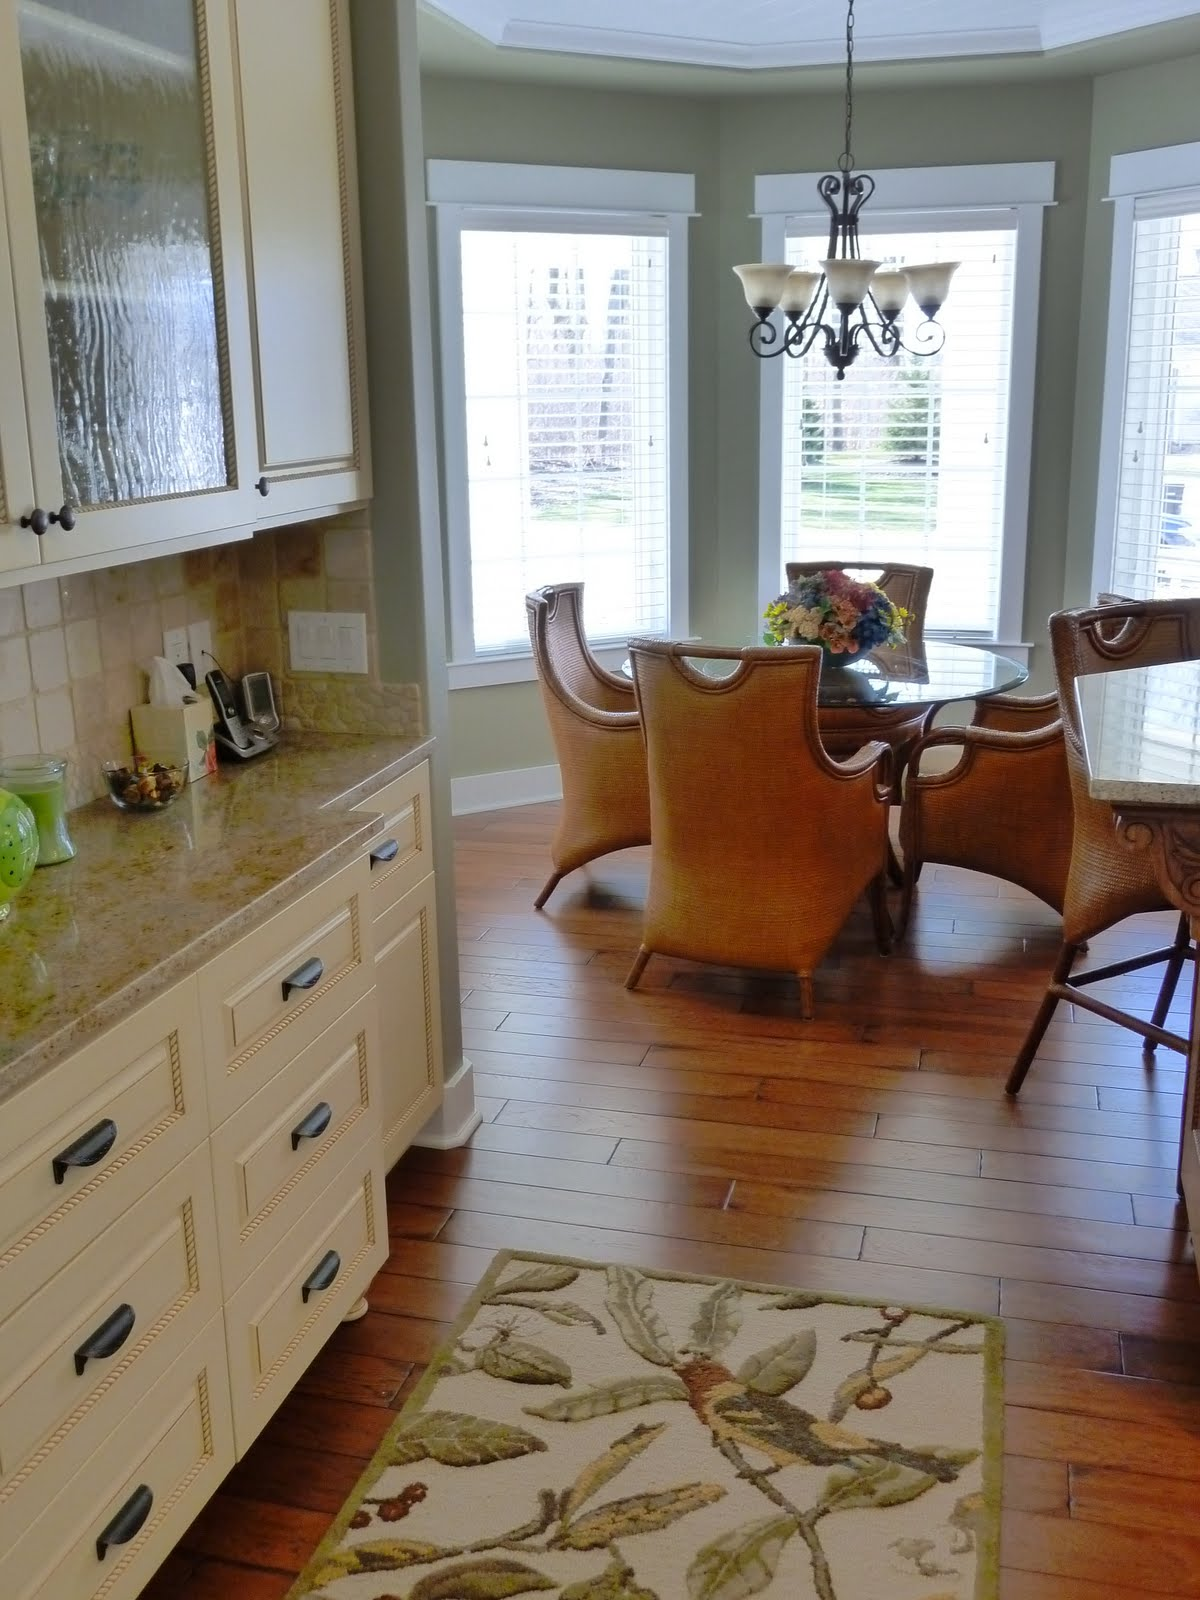 This is the look into the kitchen and dinette from the entry. I love